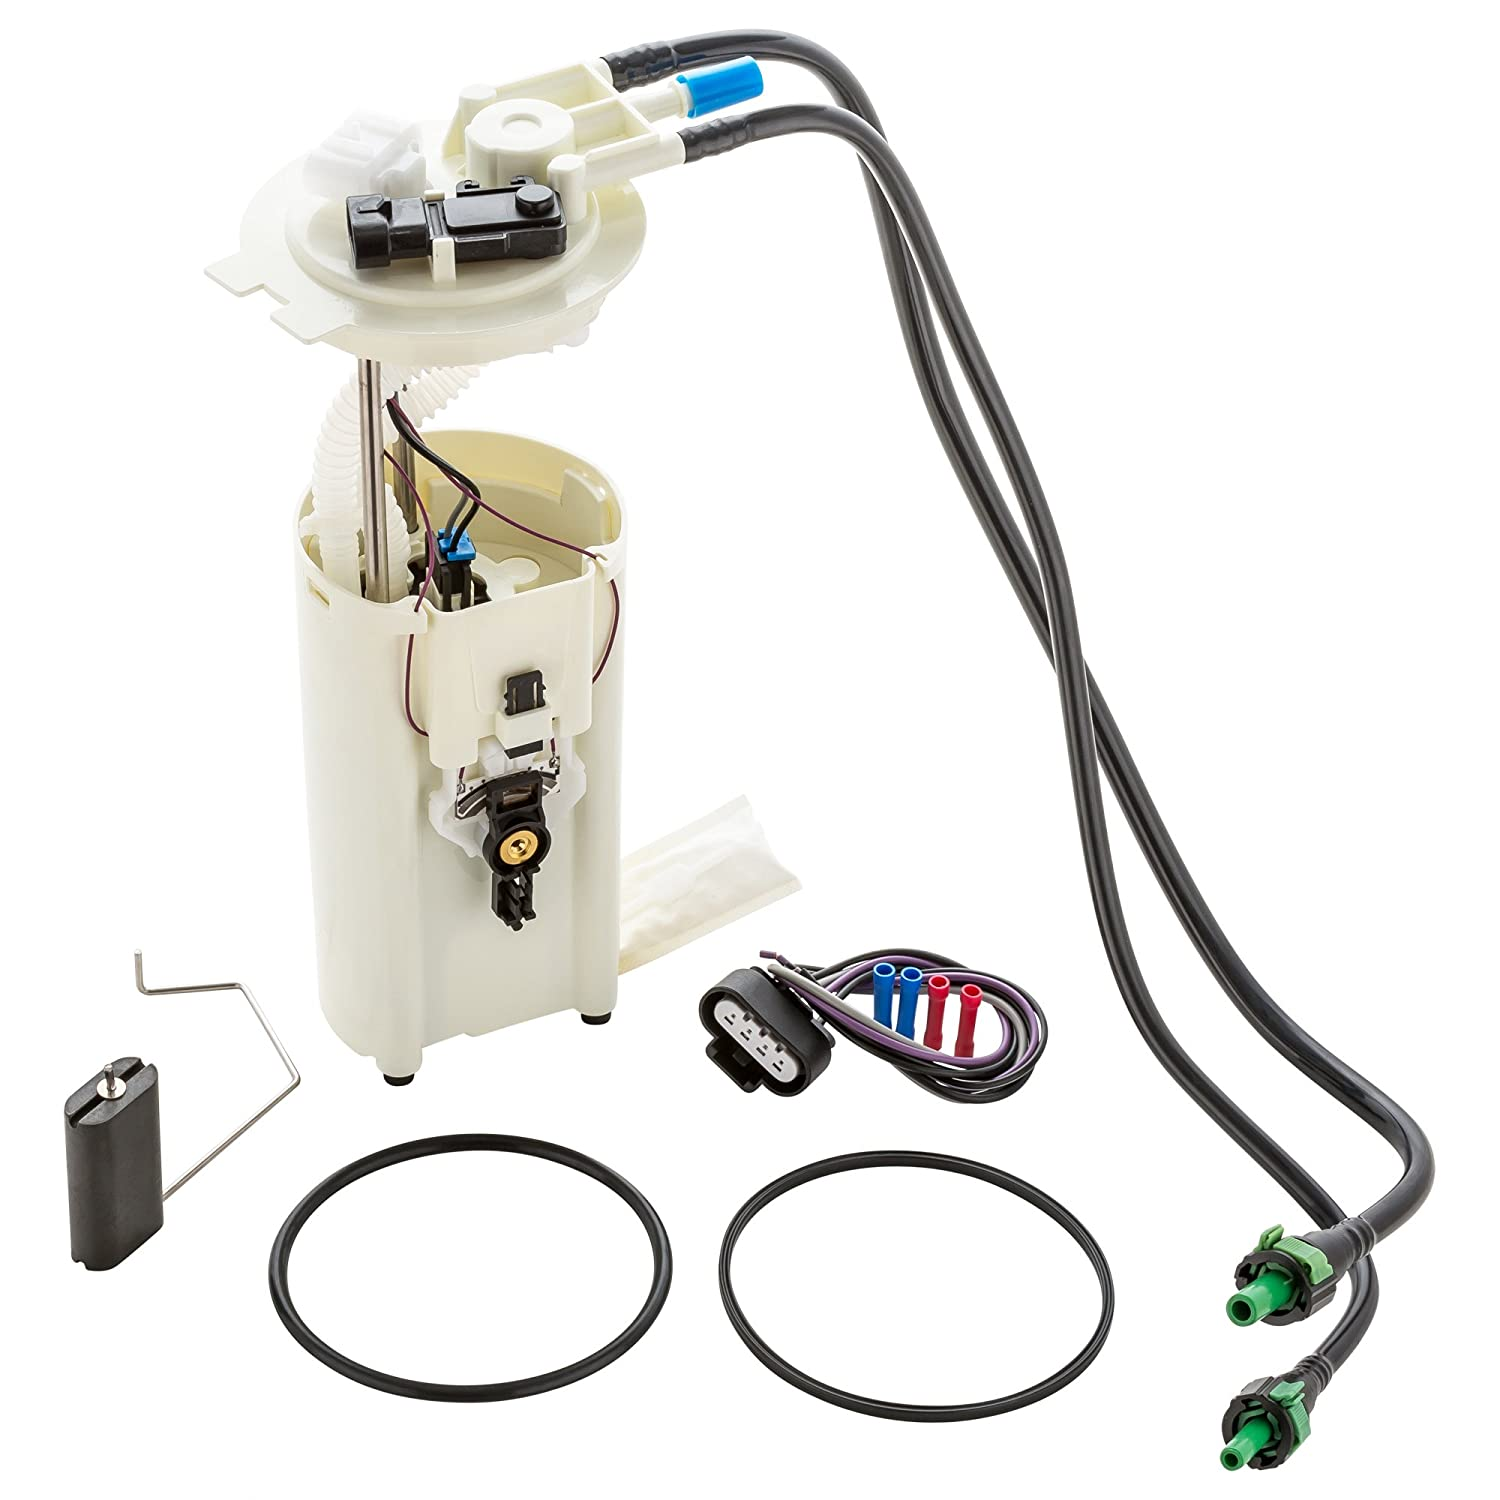 Fuel Pump For 00 05 Pontiac Grand Am Chevy Cavalier 1994 S10 Marker Light Wiring Diagram Sunfire Fits E3507m 88957239 Automotive